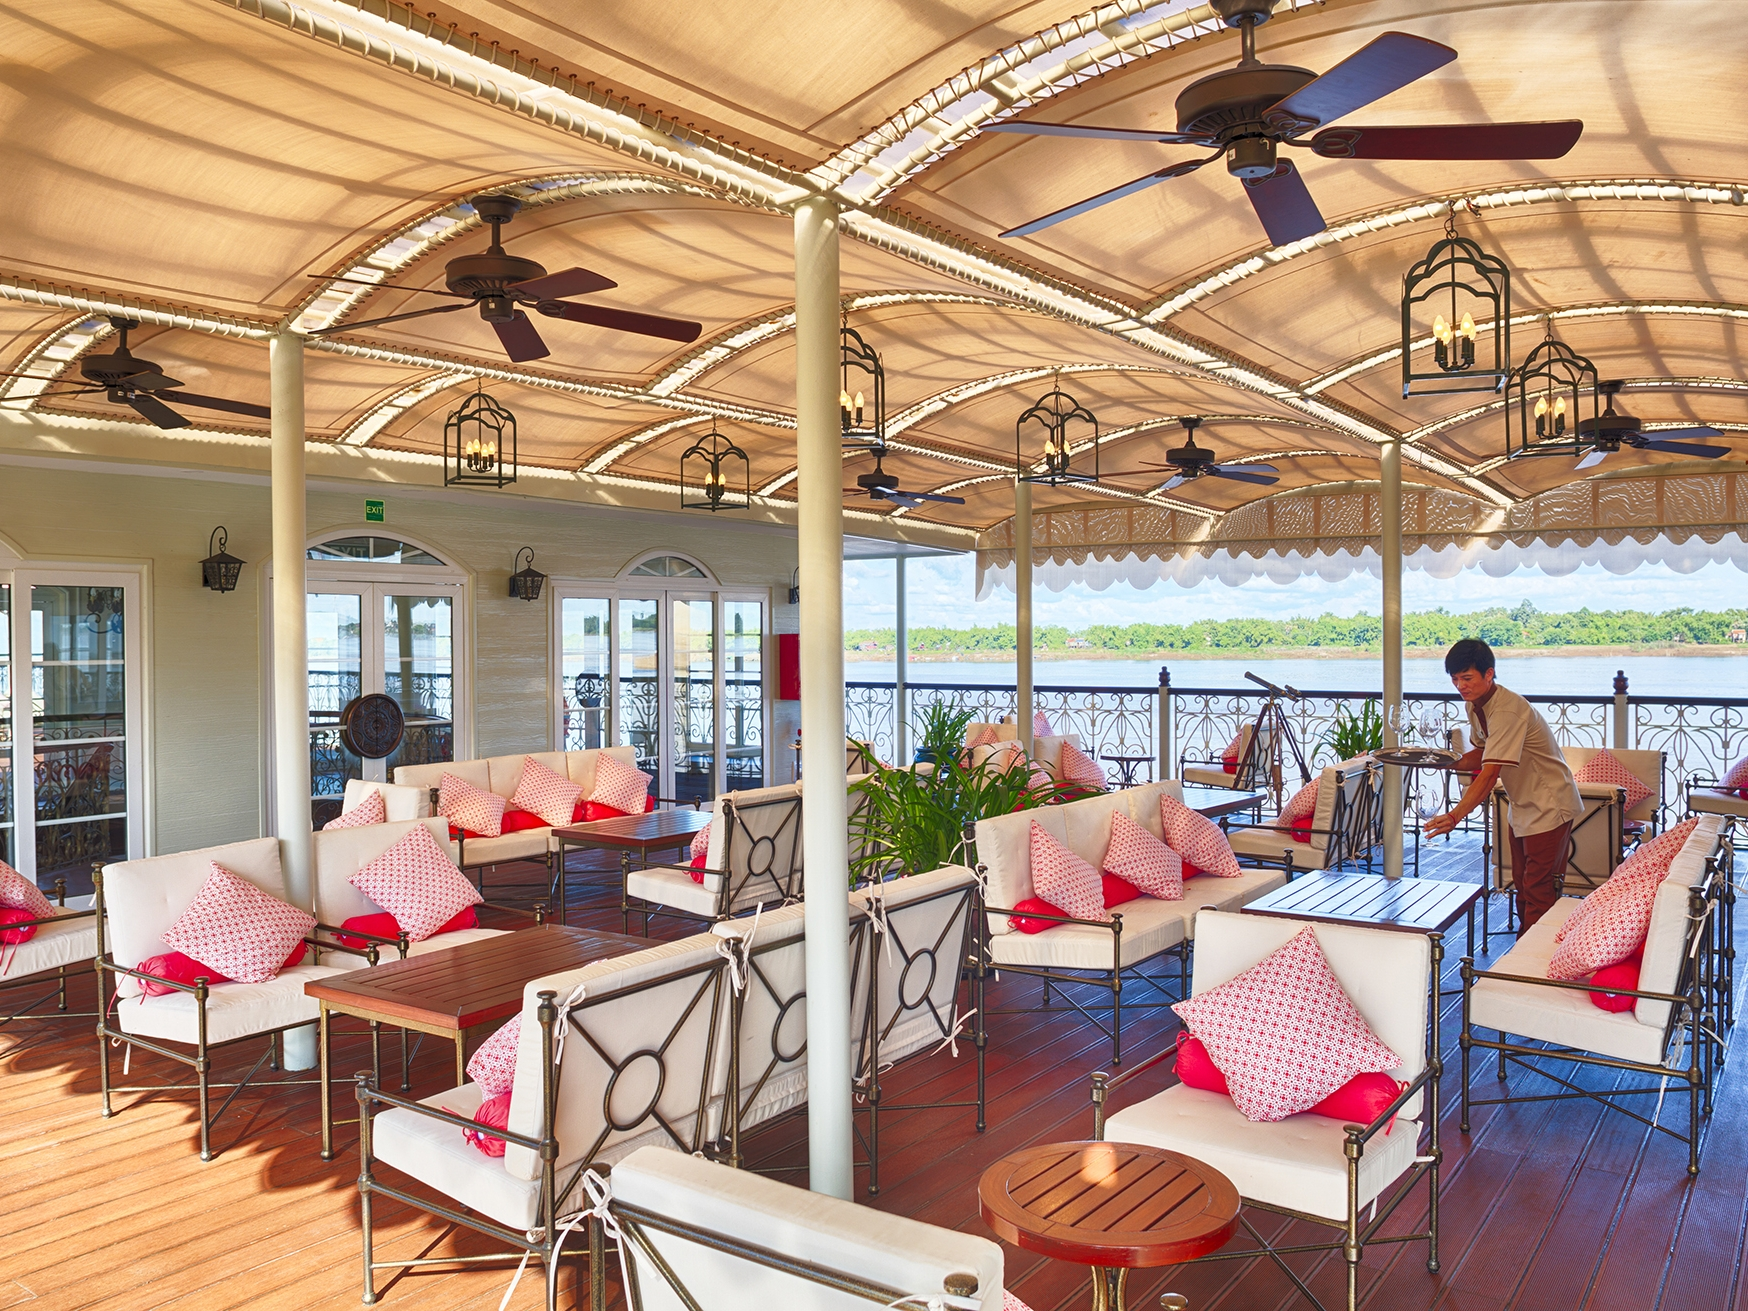 Sun Deck : Choose the perfect chaise lounge in the sun or the shade and relax in style on the Mekong Navigator's sundeck. Early risers can enjoy a front row seat for a spectacular sunrise.